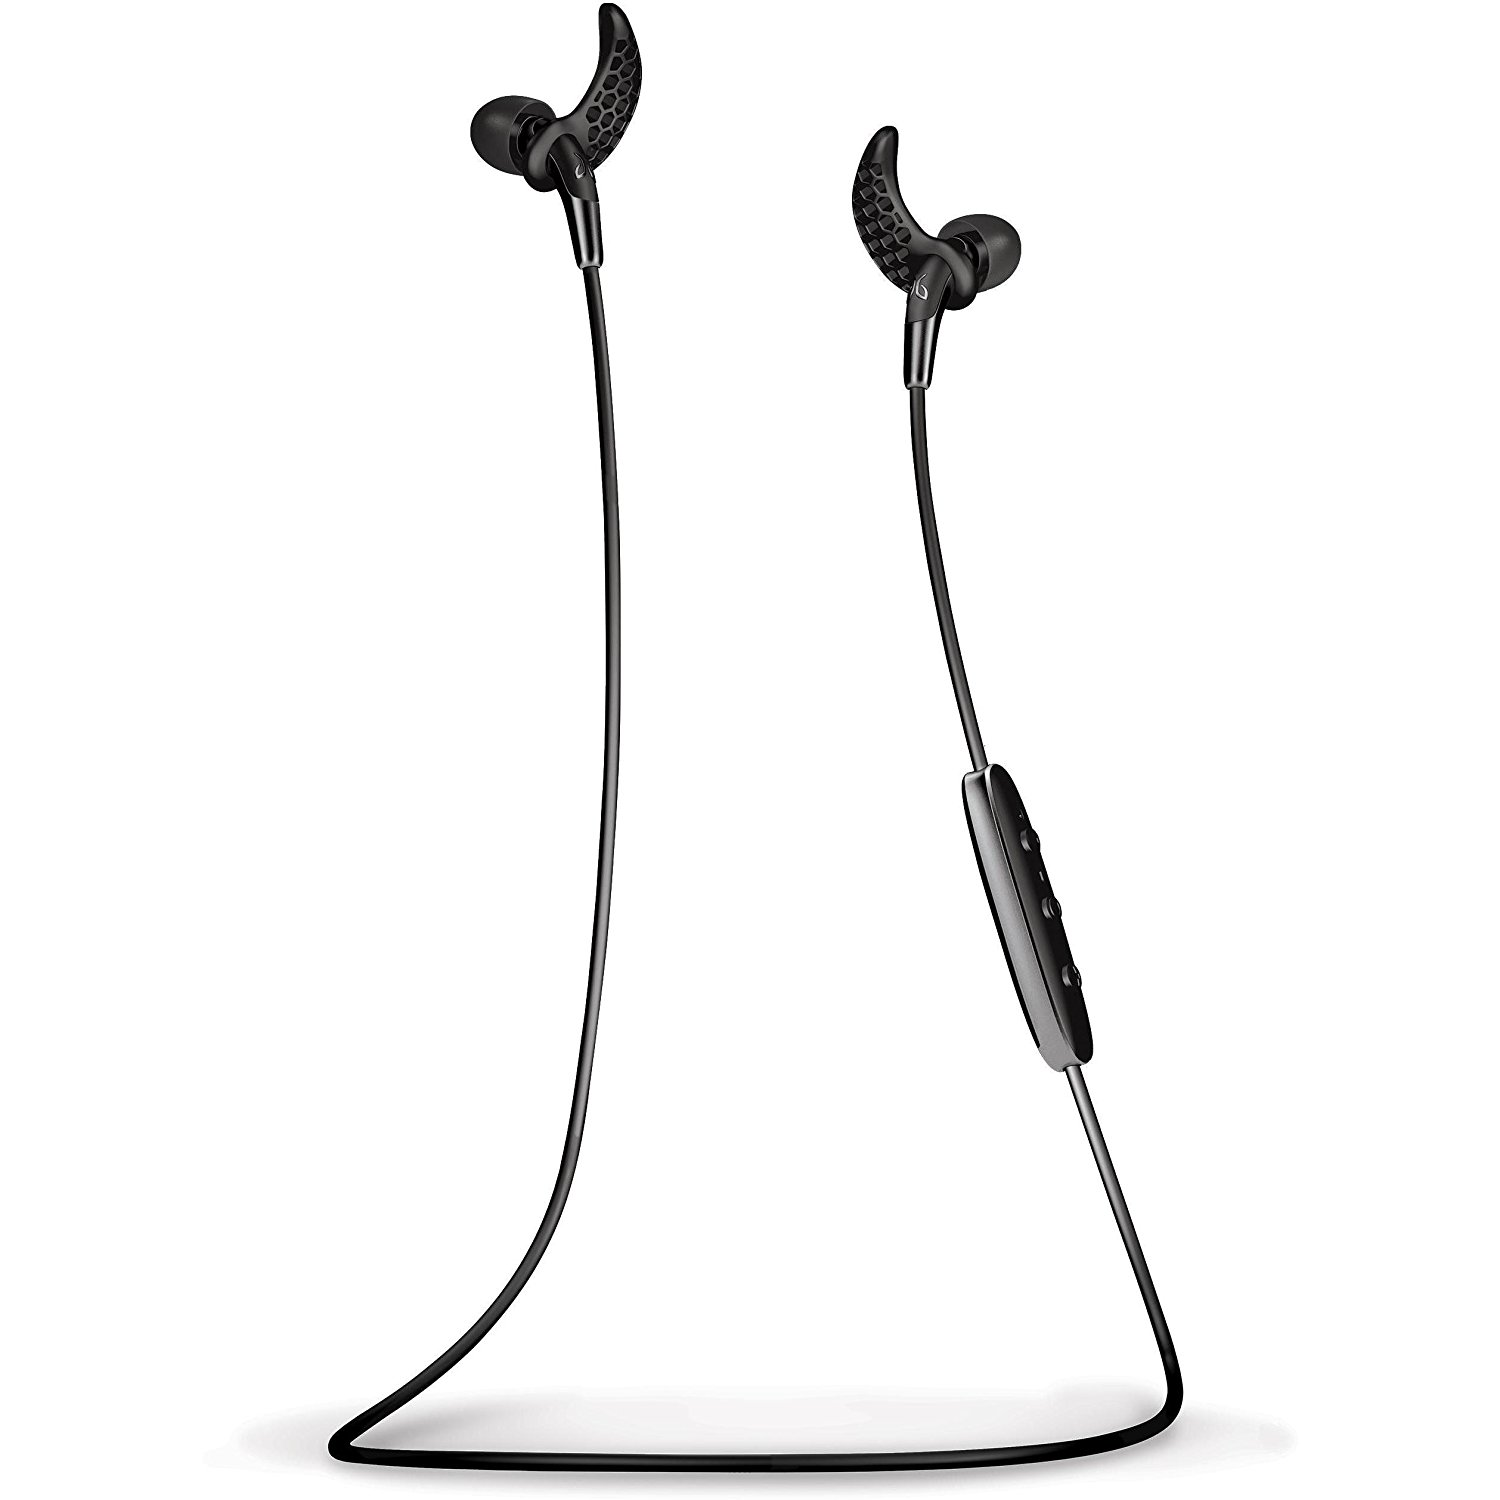 Jaybird Freedom F5 wireless headphones